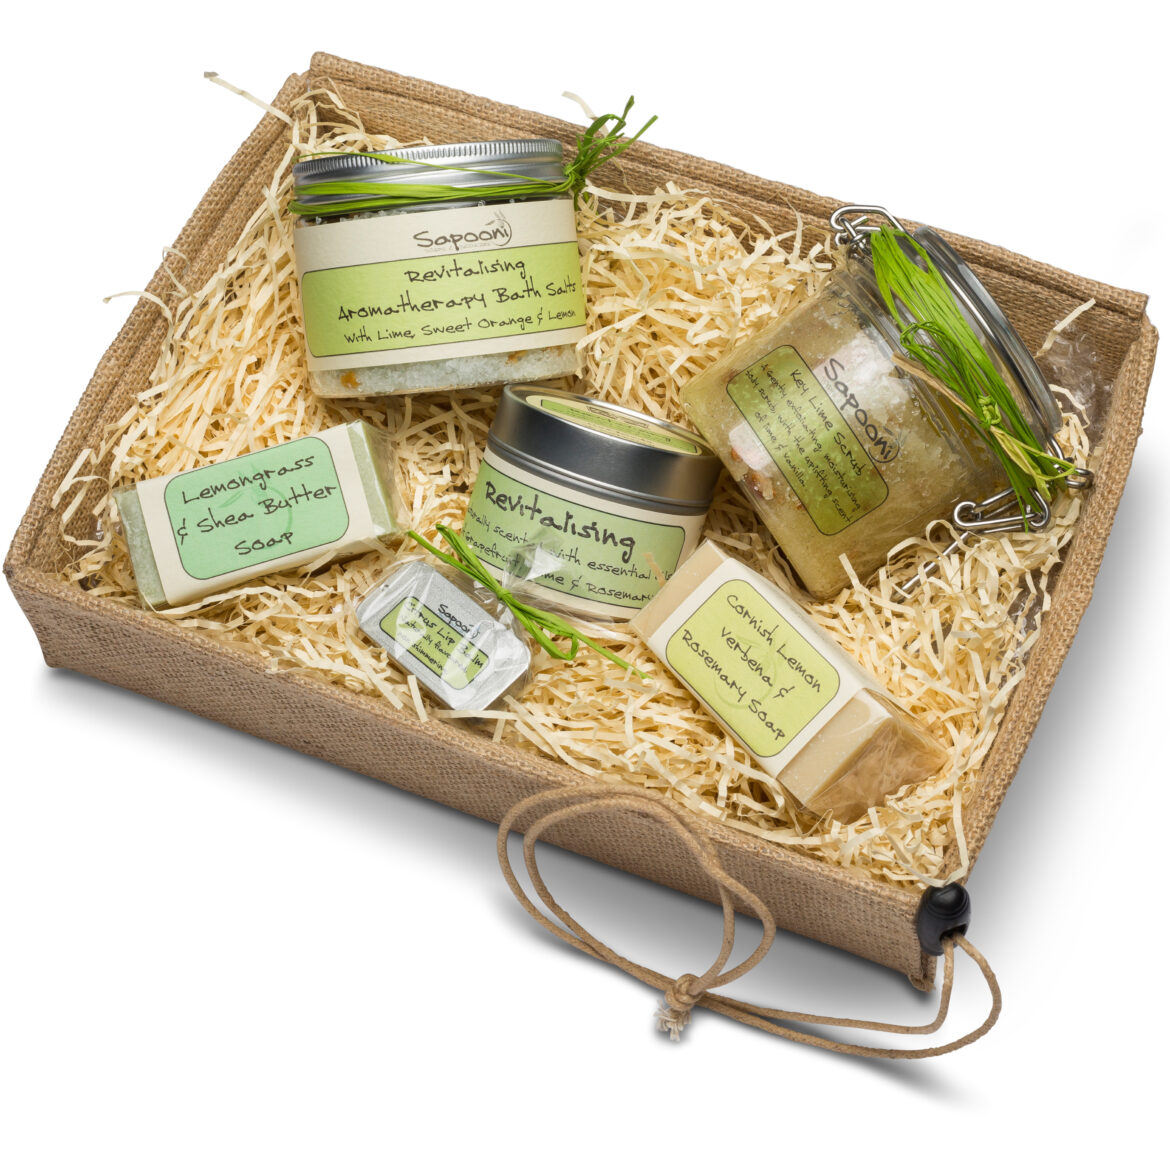 revitalising-spa-gift-hamper.jpg